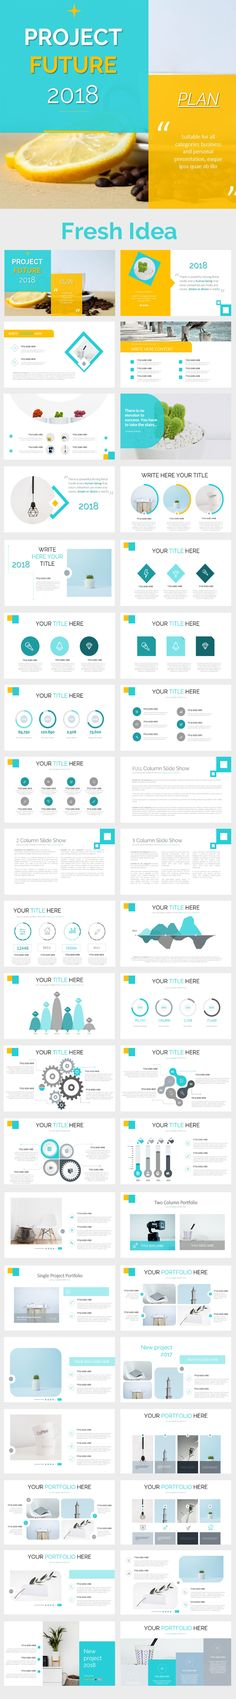 Project 2018 Powerpoint Presentation Template - PowerPoint Templates Presentation Templates